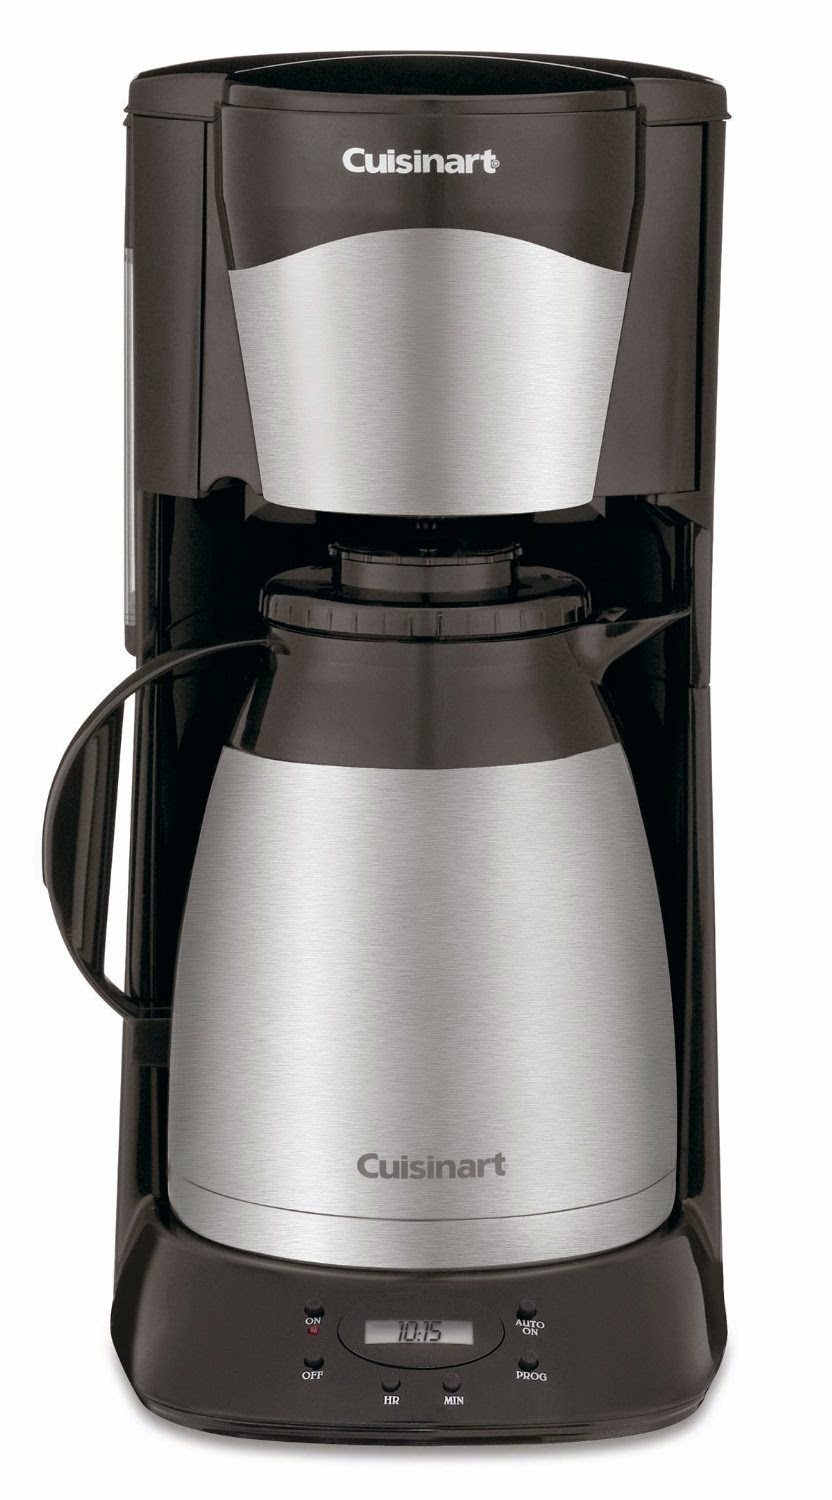 Cuisinart Coffee Makers: 12-Cup Thermal Automatic Coffee Maker